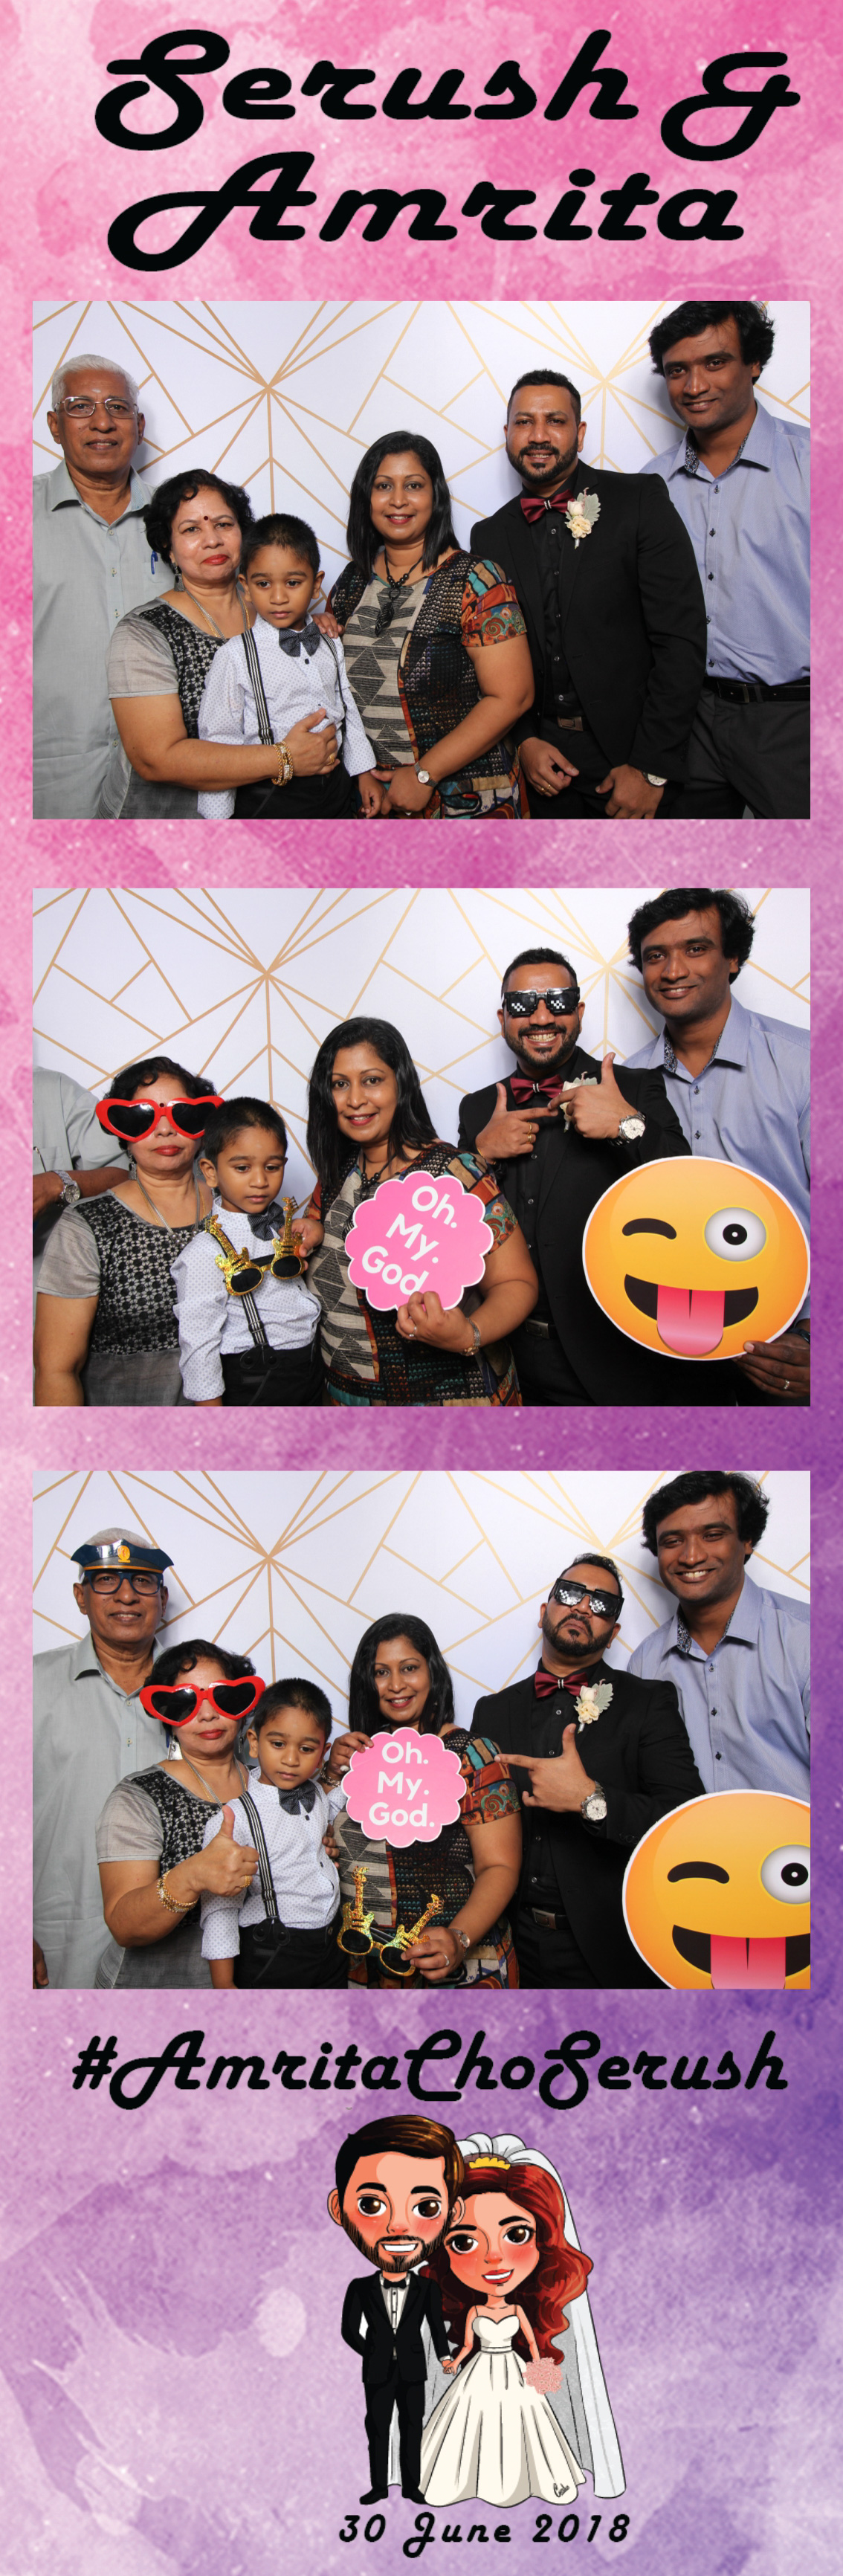 whoots photo booth singapore wedding (4